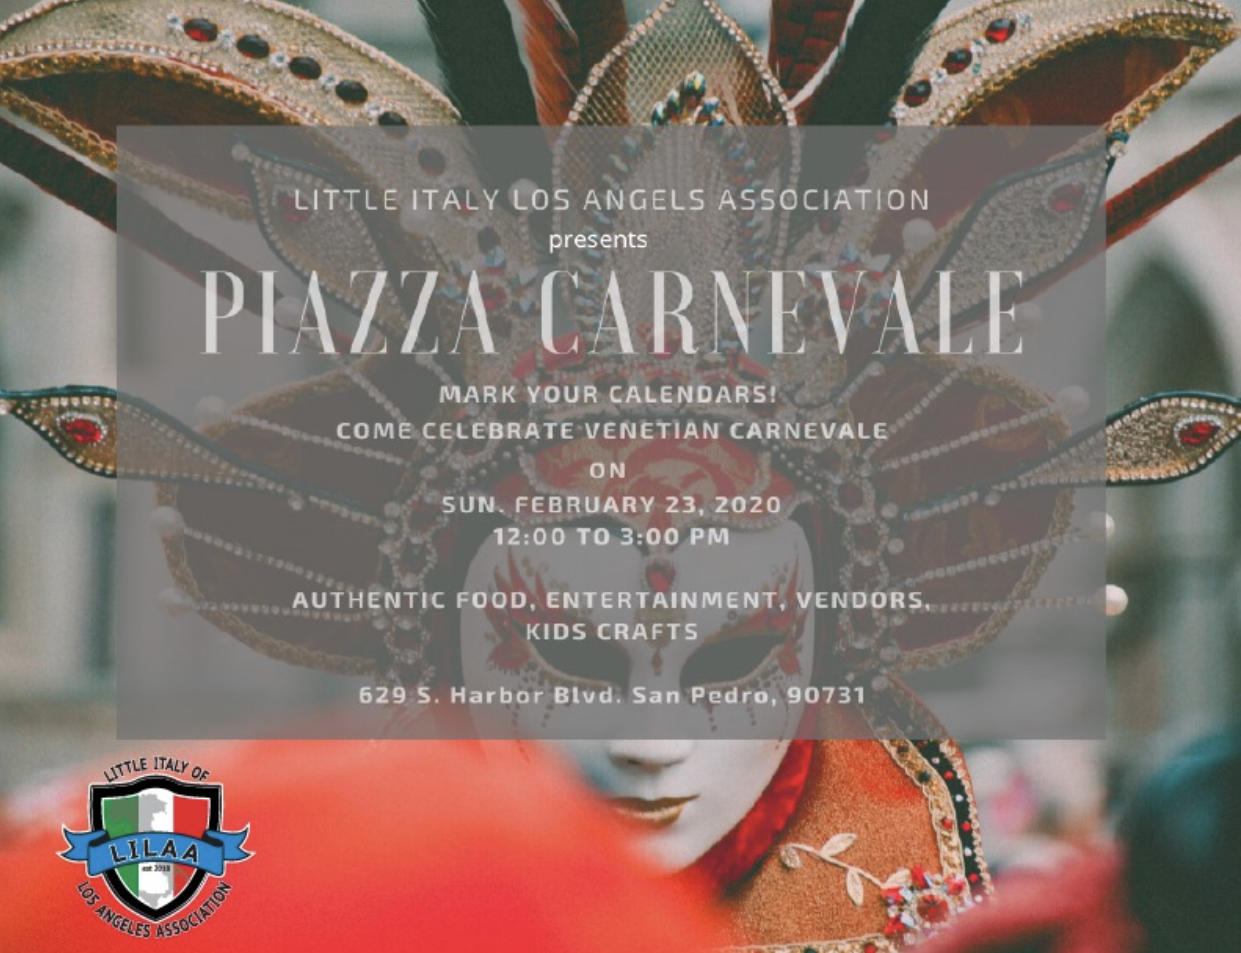 Piazza Carnevale Event present by Little Italy of LA Assoc.